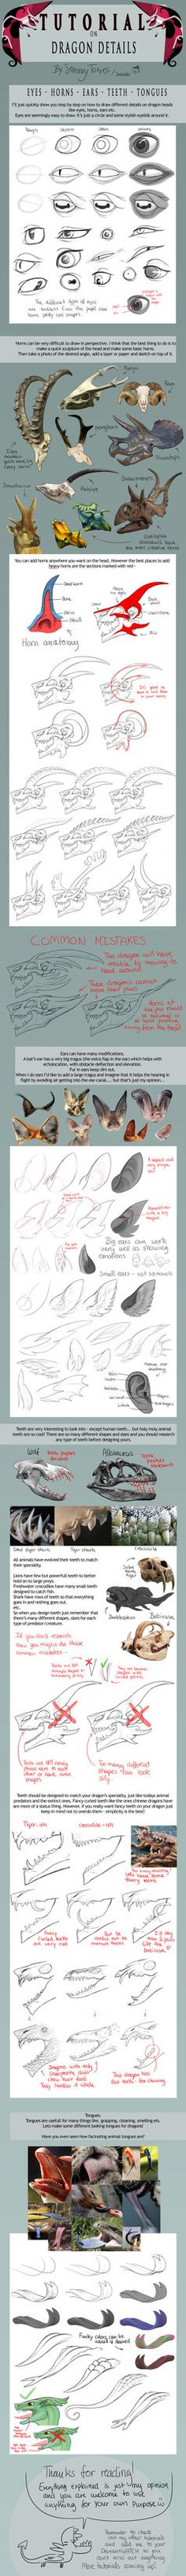 TUTORIAL: Dragon Details by SammyTorres on DeviantArt